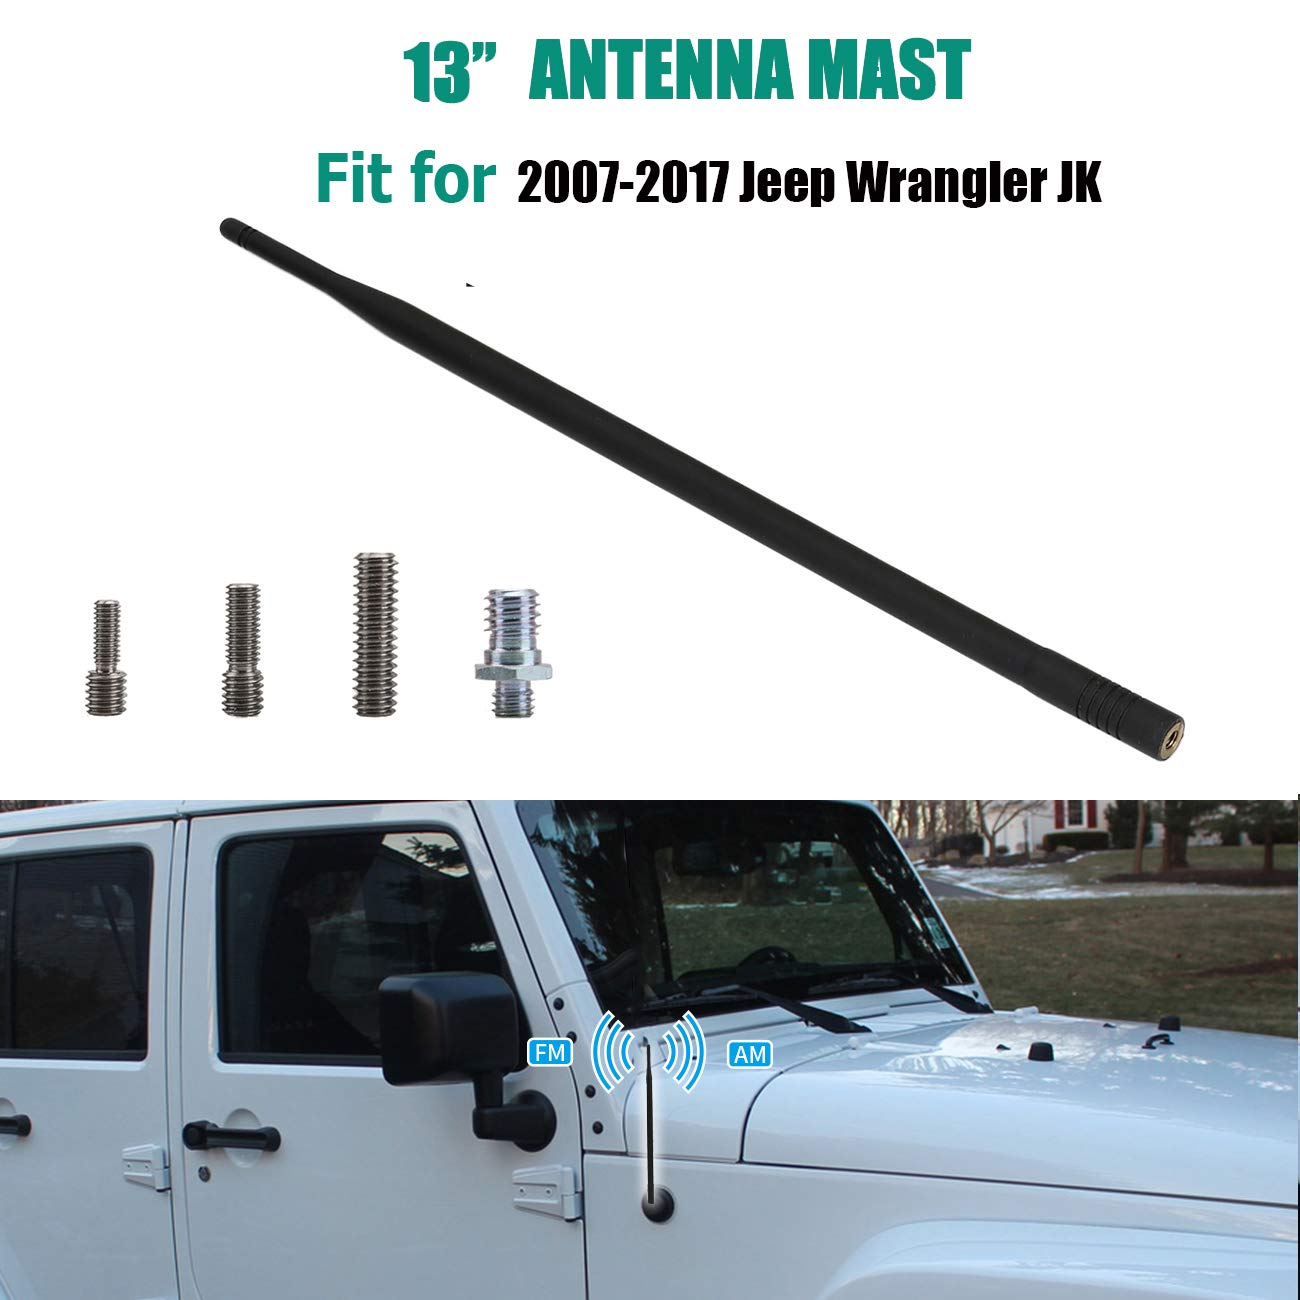 13 Inches Antenna Replacement Maintains AM FM Reception Antenna for Jeep Wrangler 2007-2017 RONGZHI